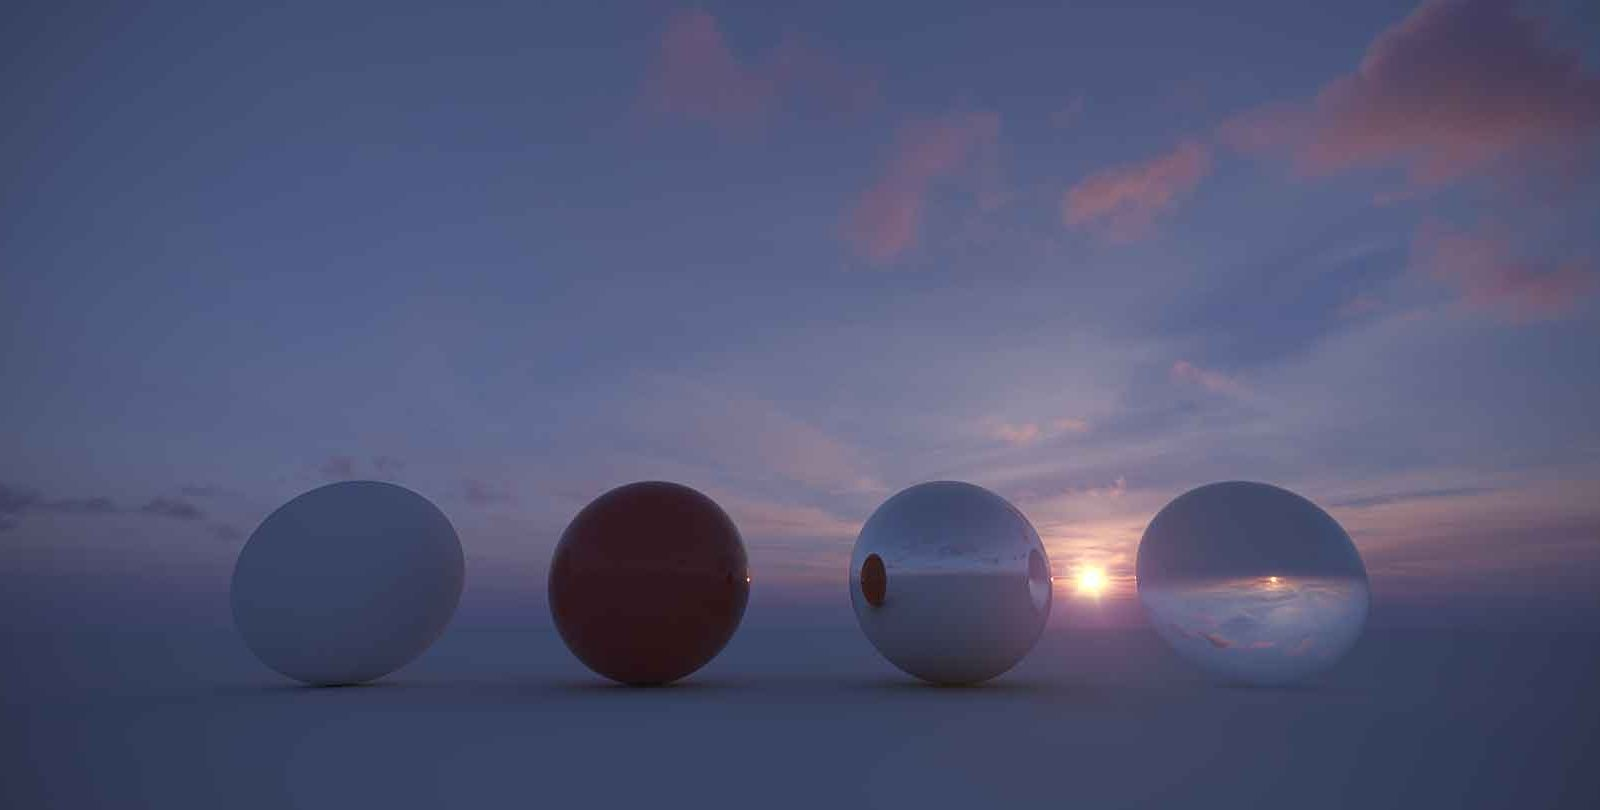 CG HDRI / Winter Skies from helloluxx by Shawn Astrom